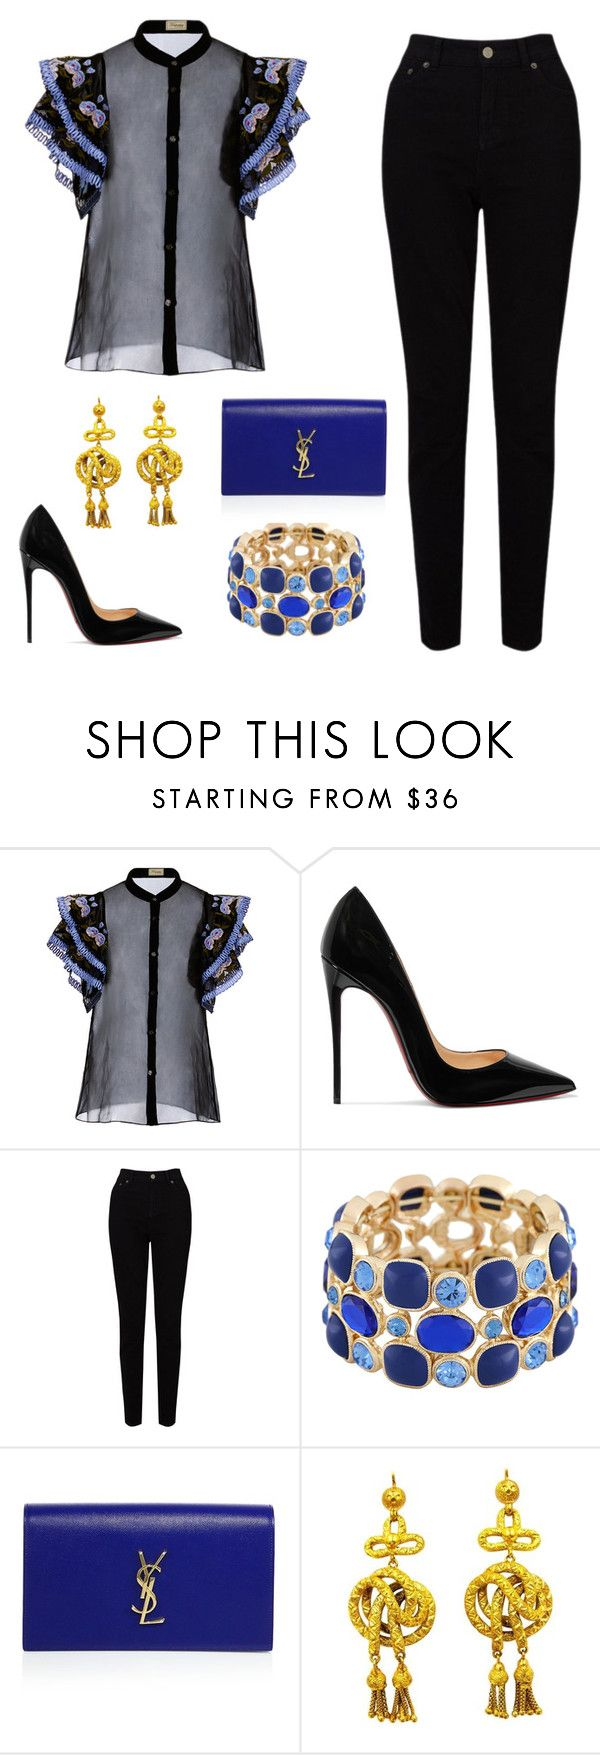 """""""Untitled #138"""" by twinstar2779 ❤ liked on Polyvore featuring Temperley London, Christian Louboutin, EAST, Monet and Yves Saint Laurent"""